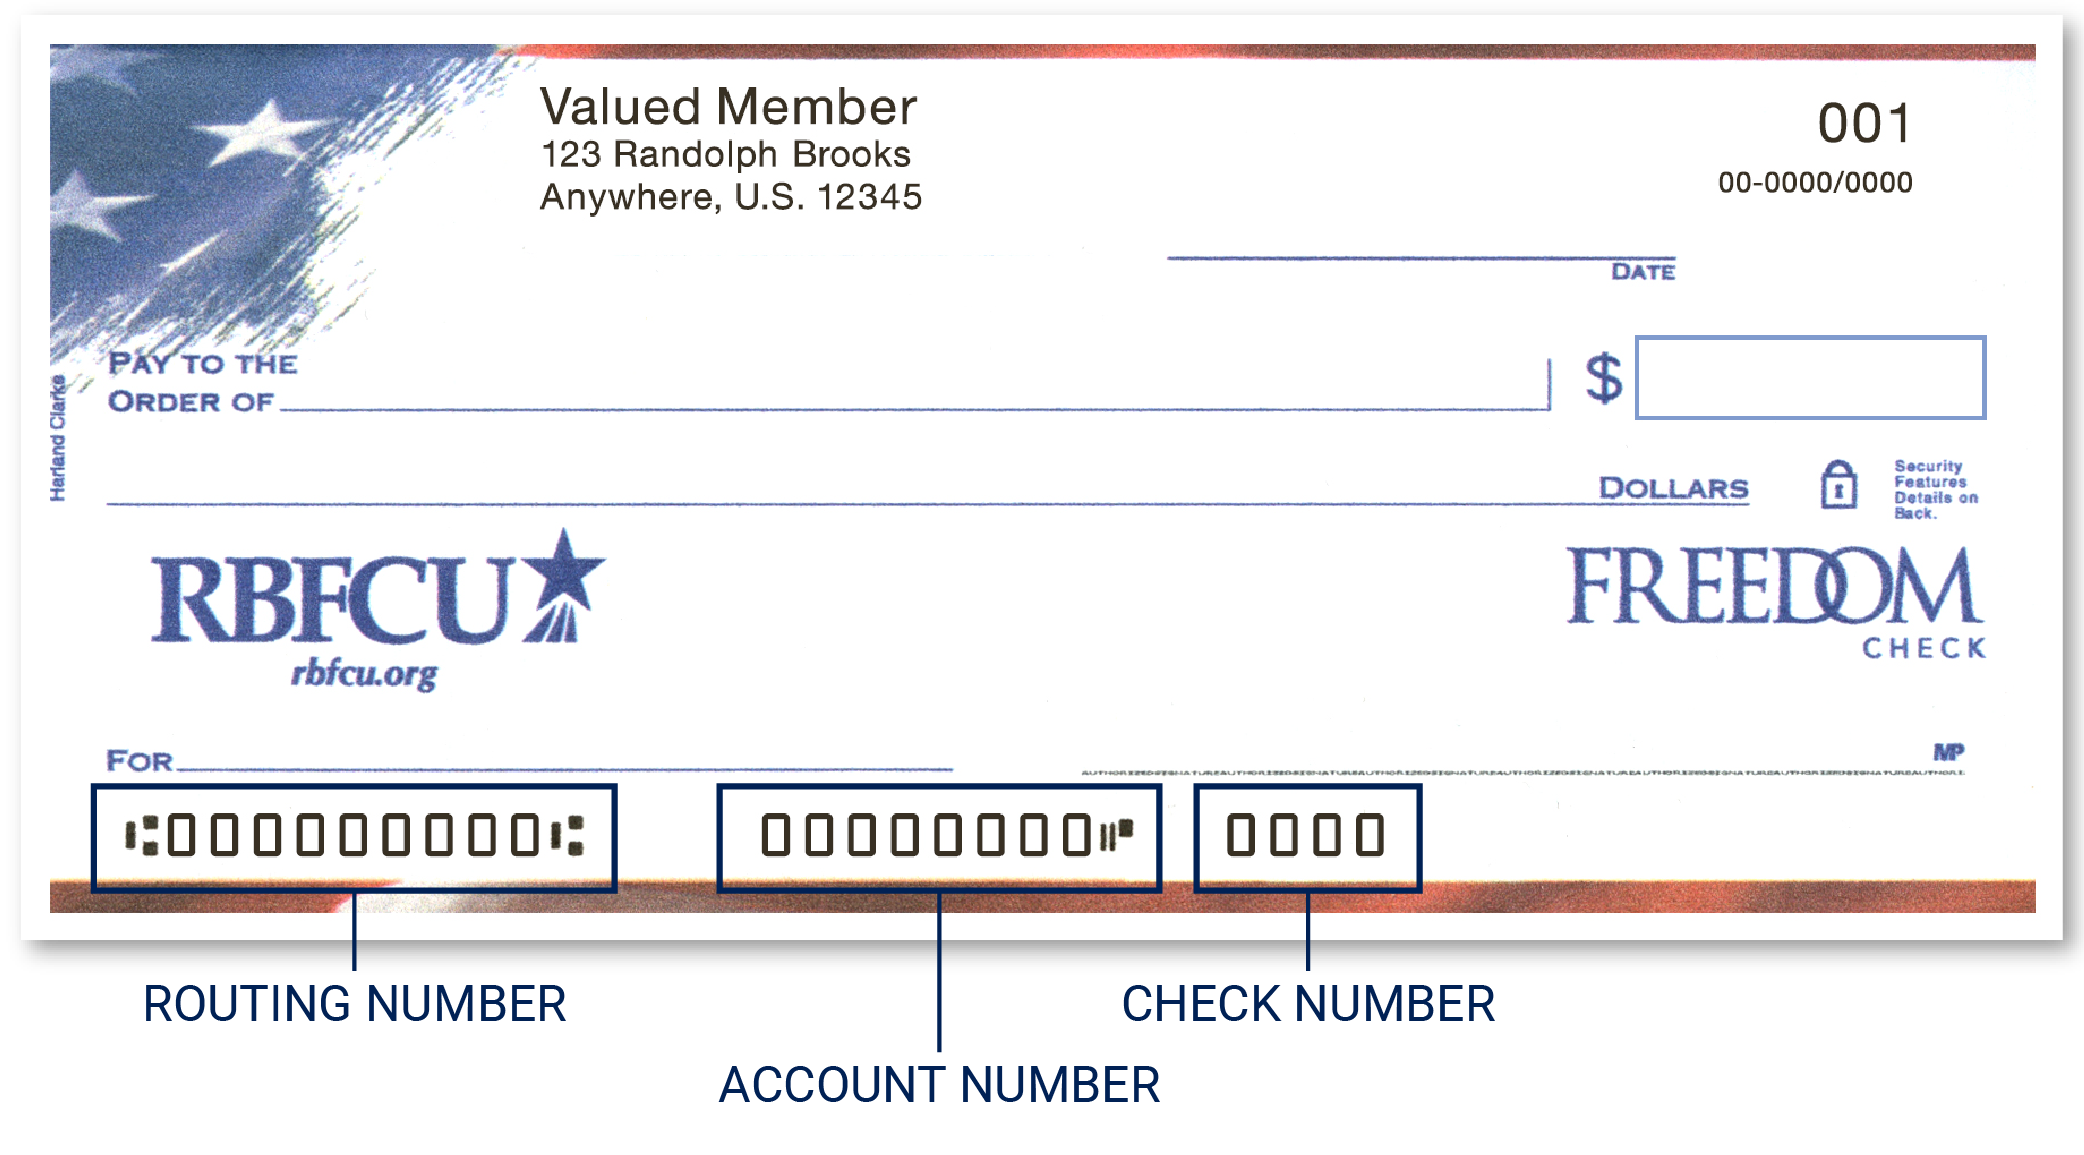 RBFCU check identify location of routing number, account number and check number